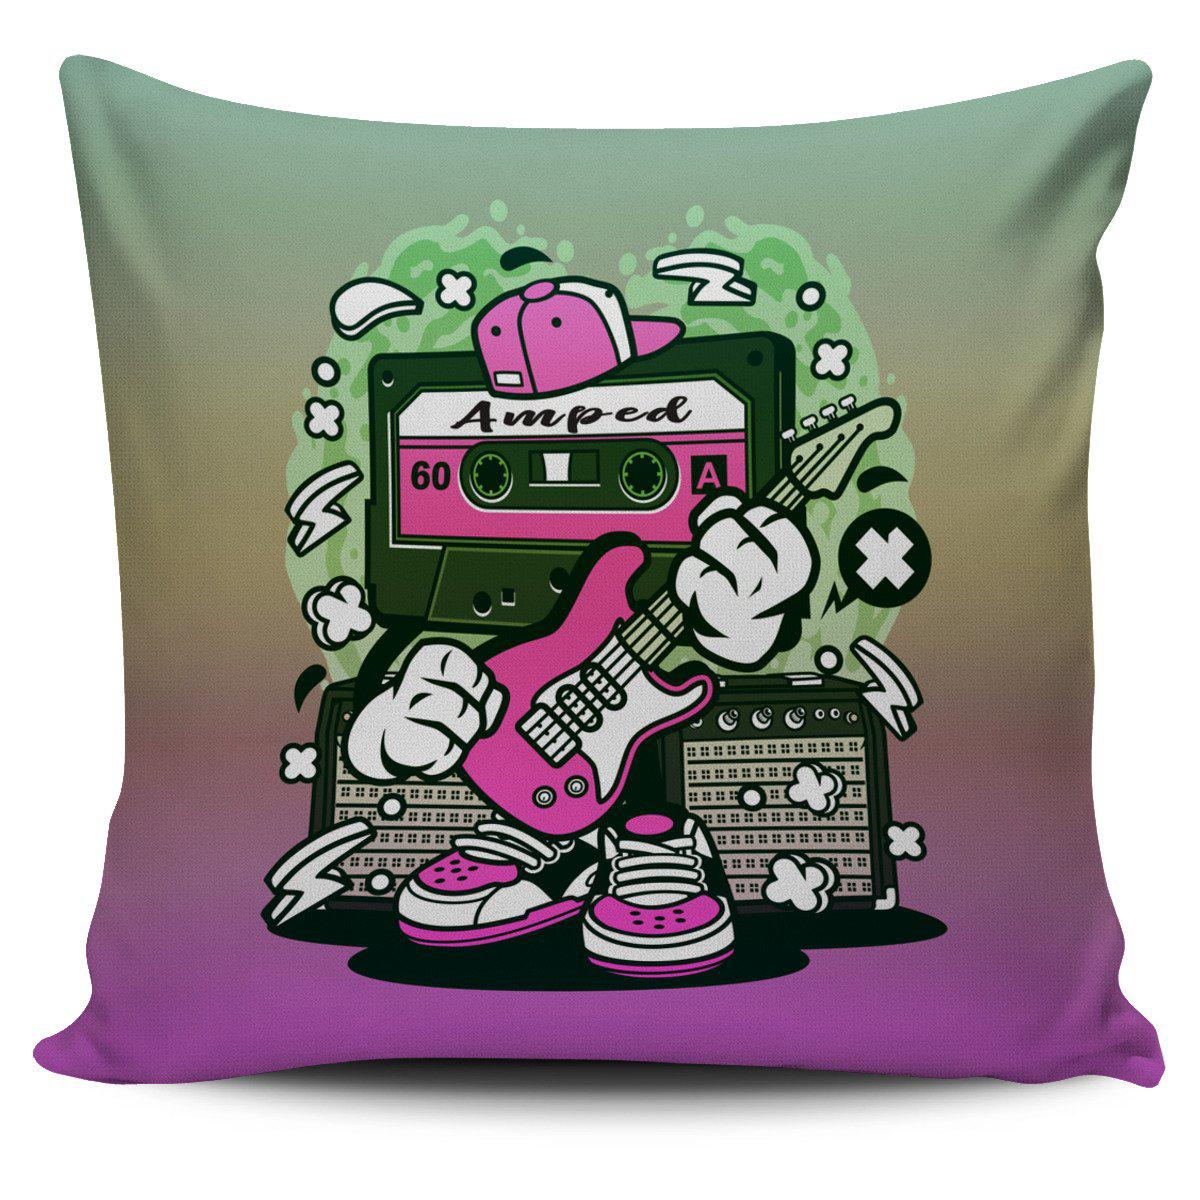 Shopeholic:Amped Guitar Pillow Cover